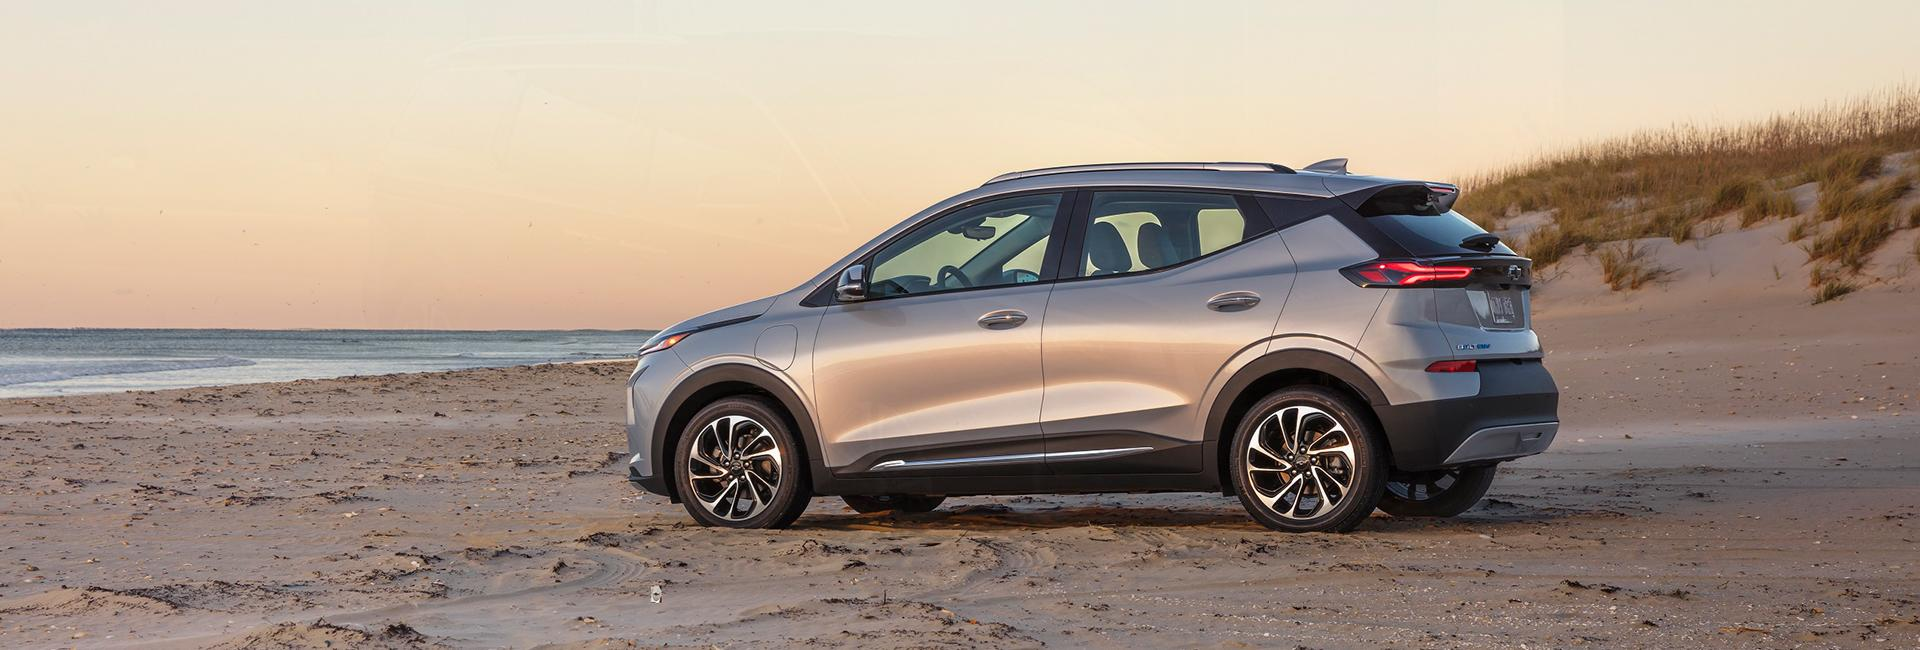 Side profile of a silver Chevy Bolt parked on a beach